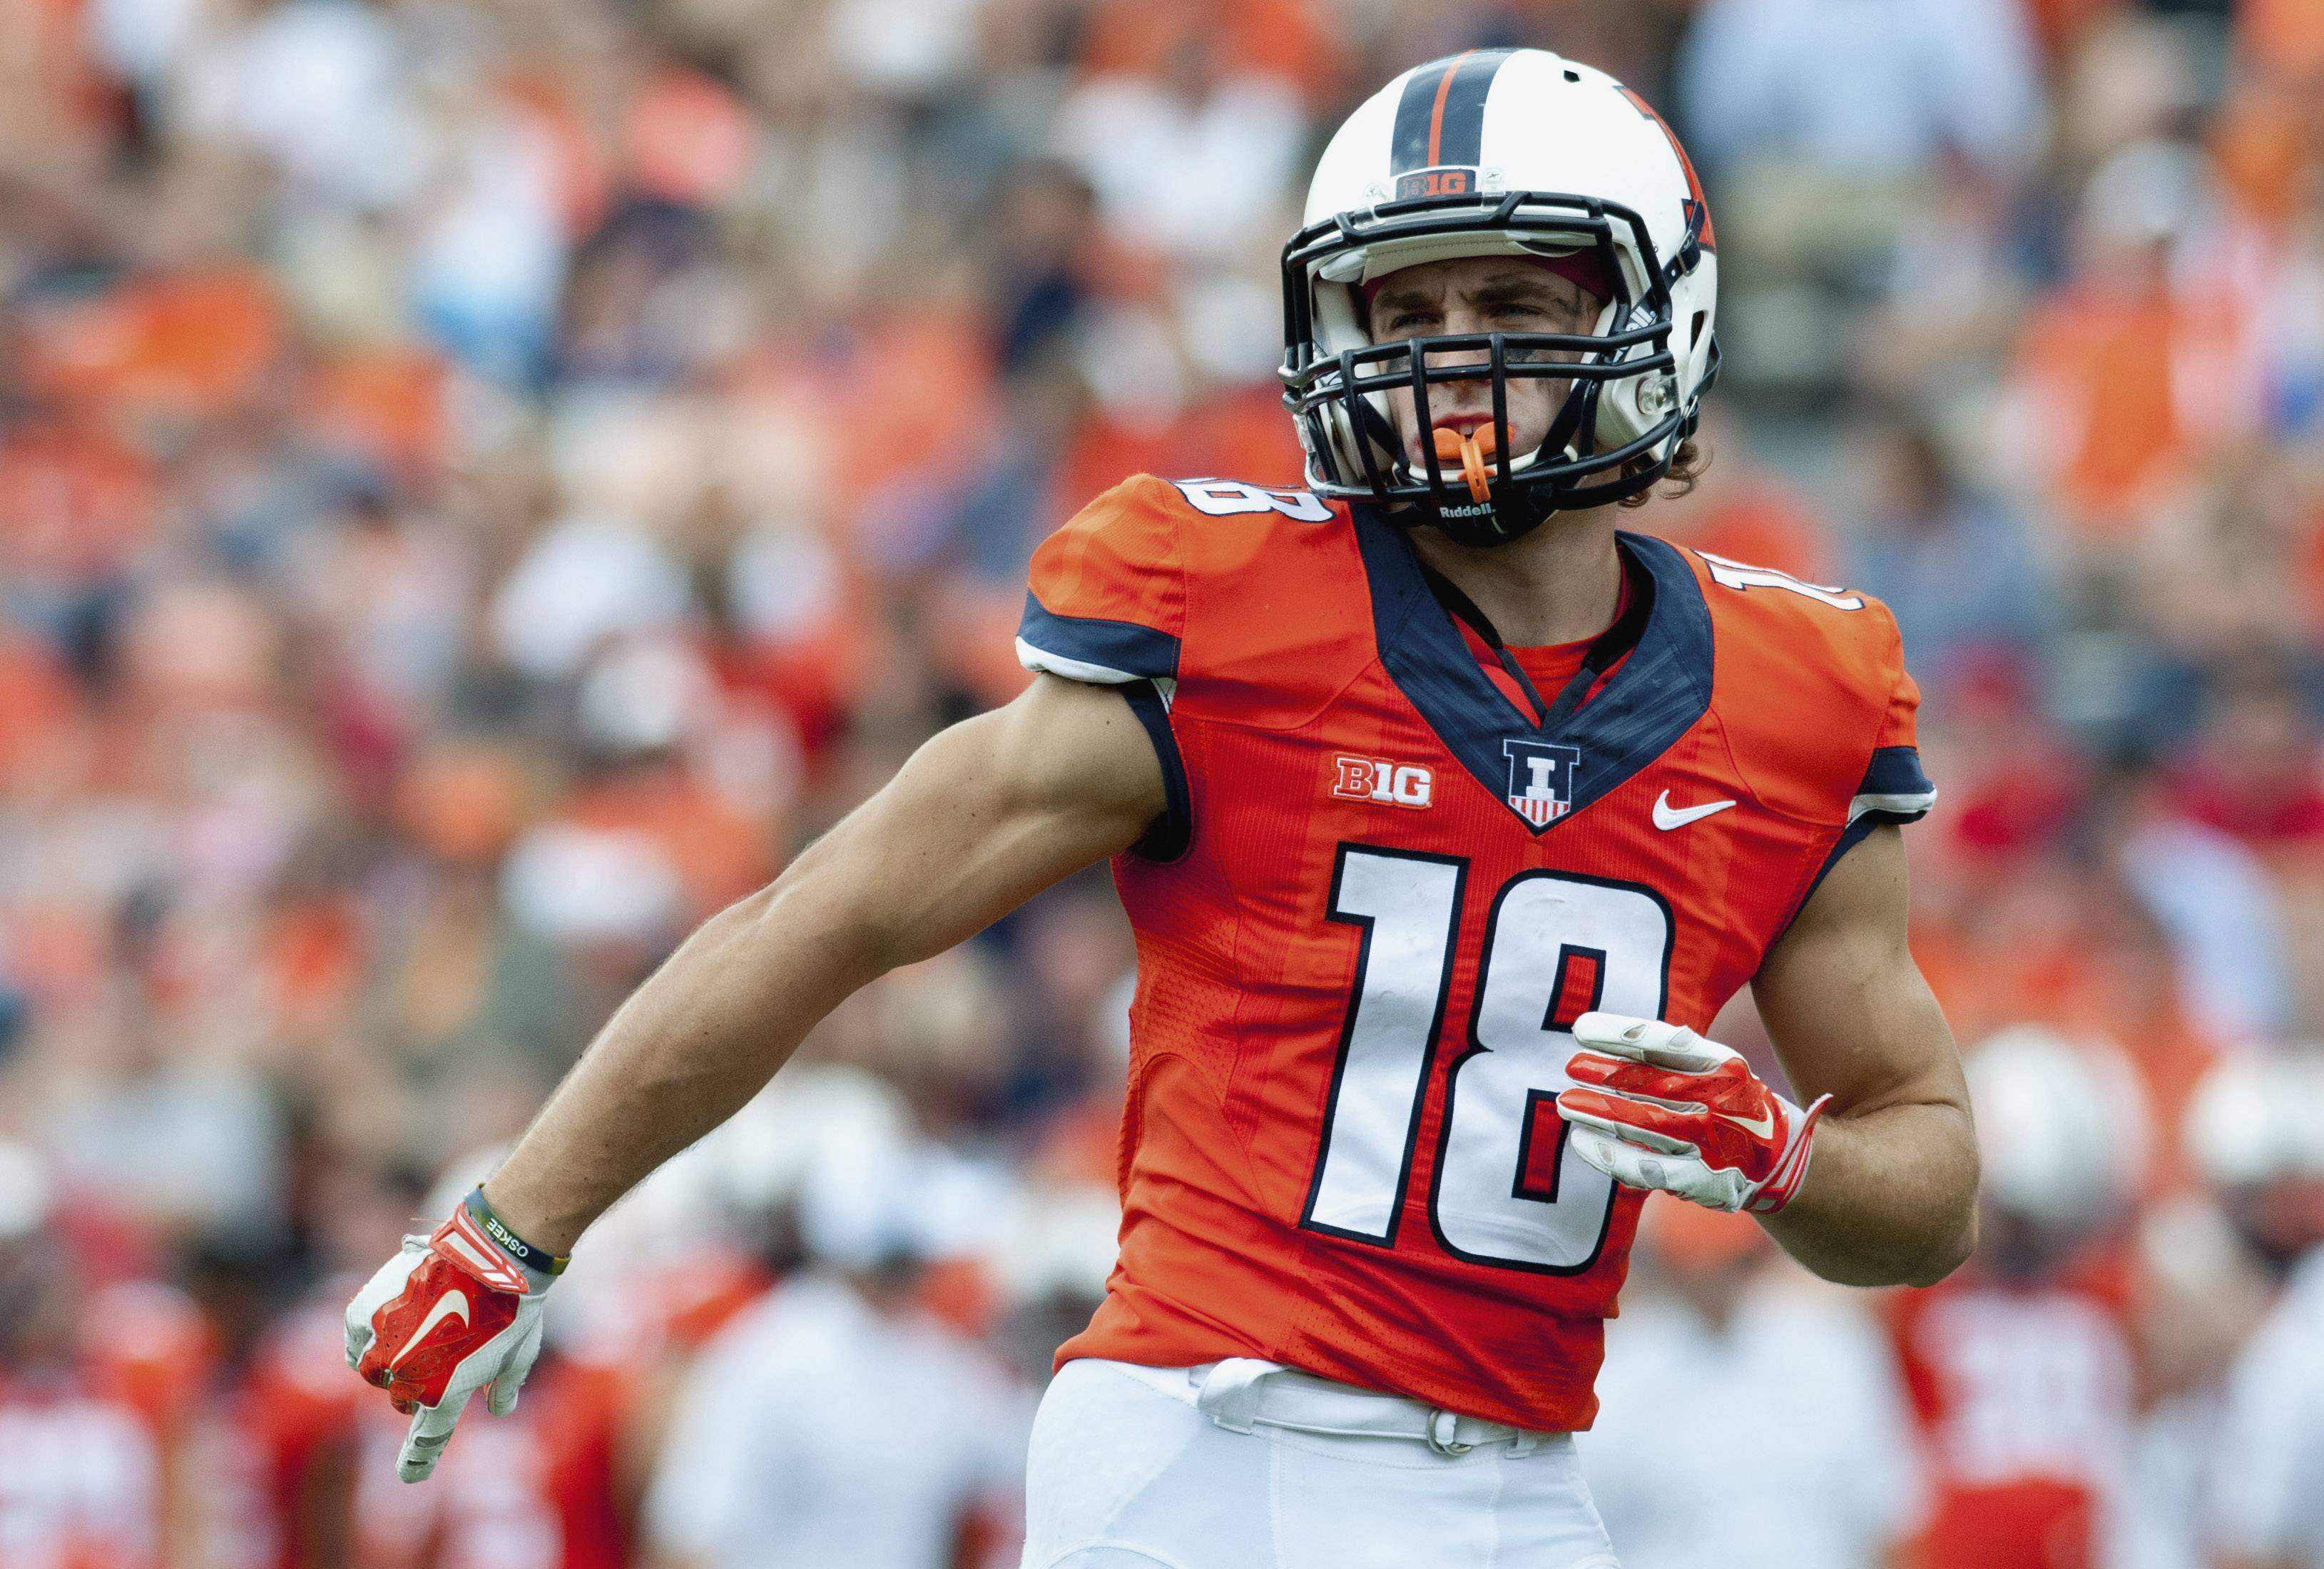 In this Sept. 6, 2014, file photo, Illinois wide receiver Mike Dudek takes his position before a snap during an NCAA college football game against Western Kentucky in Champaign, Ill.